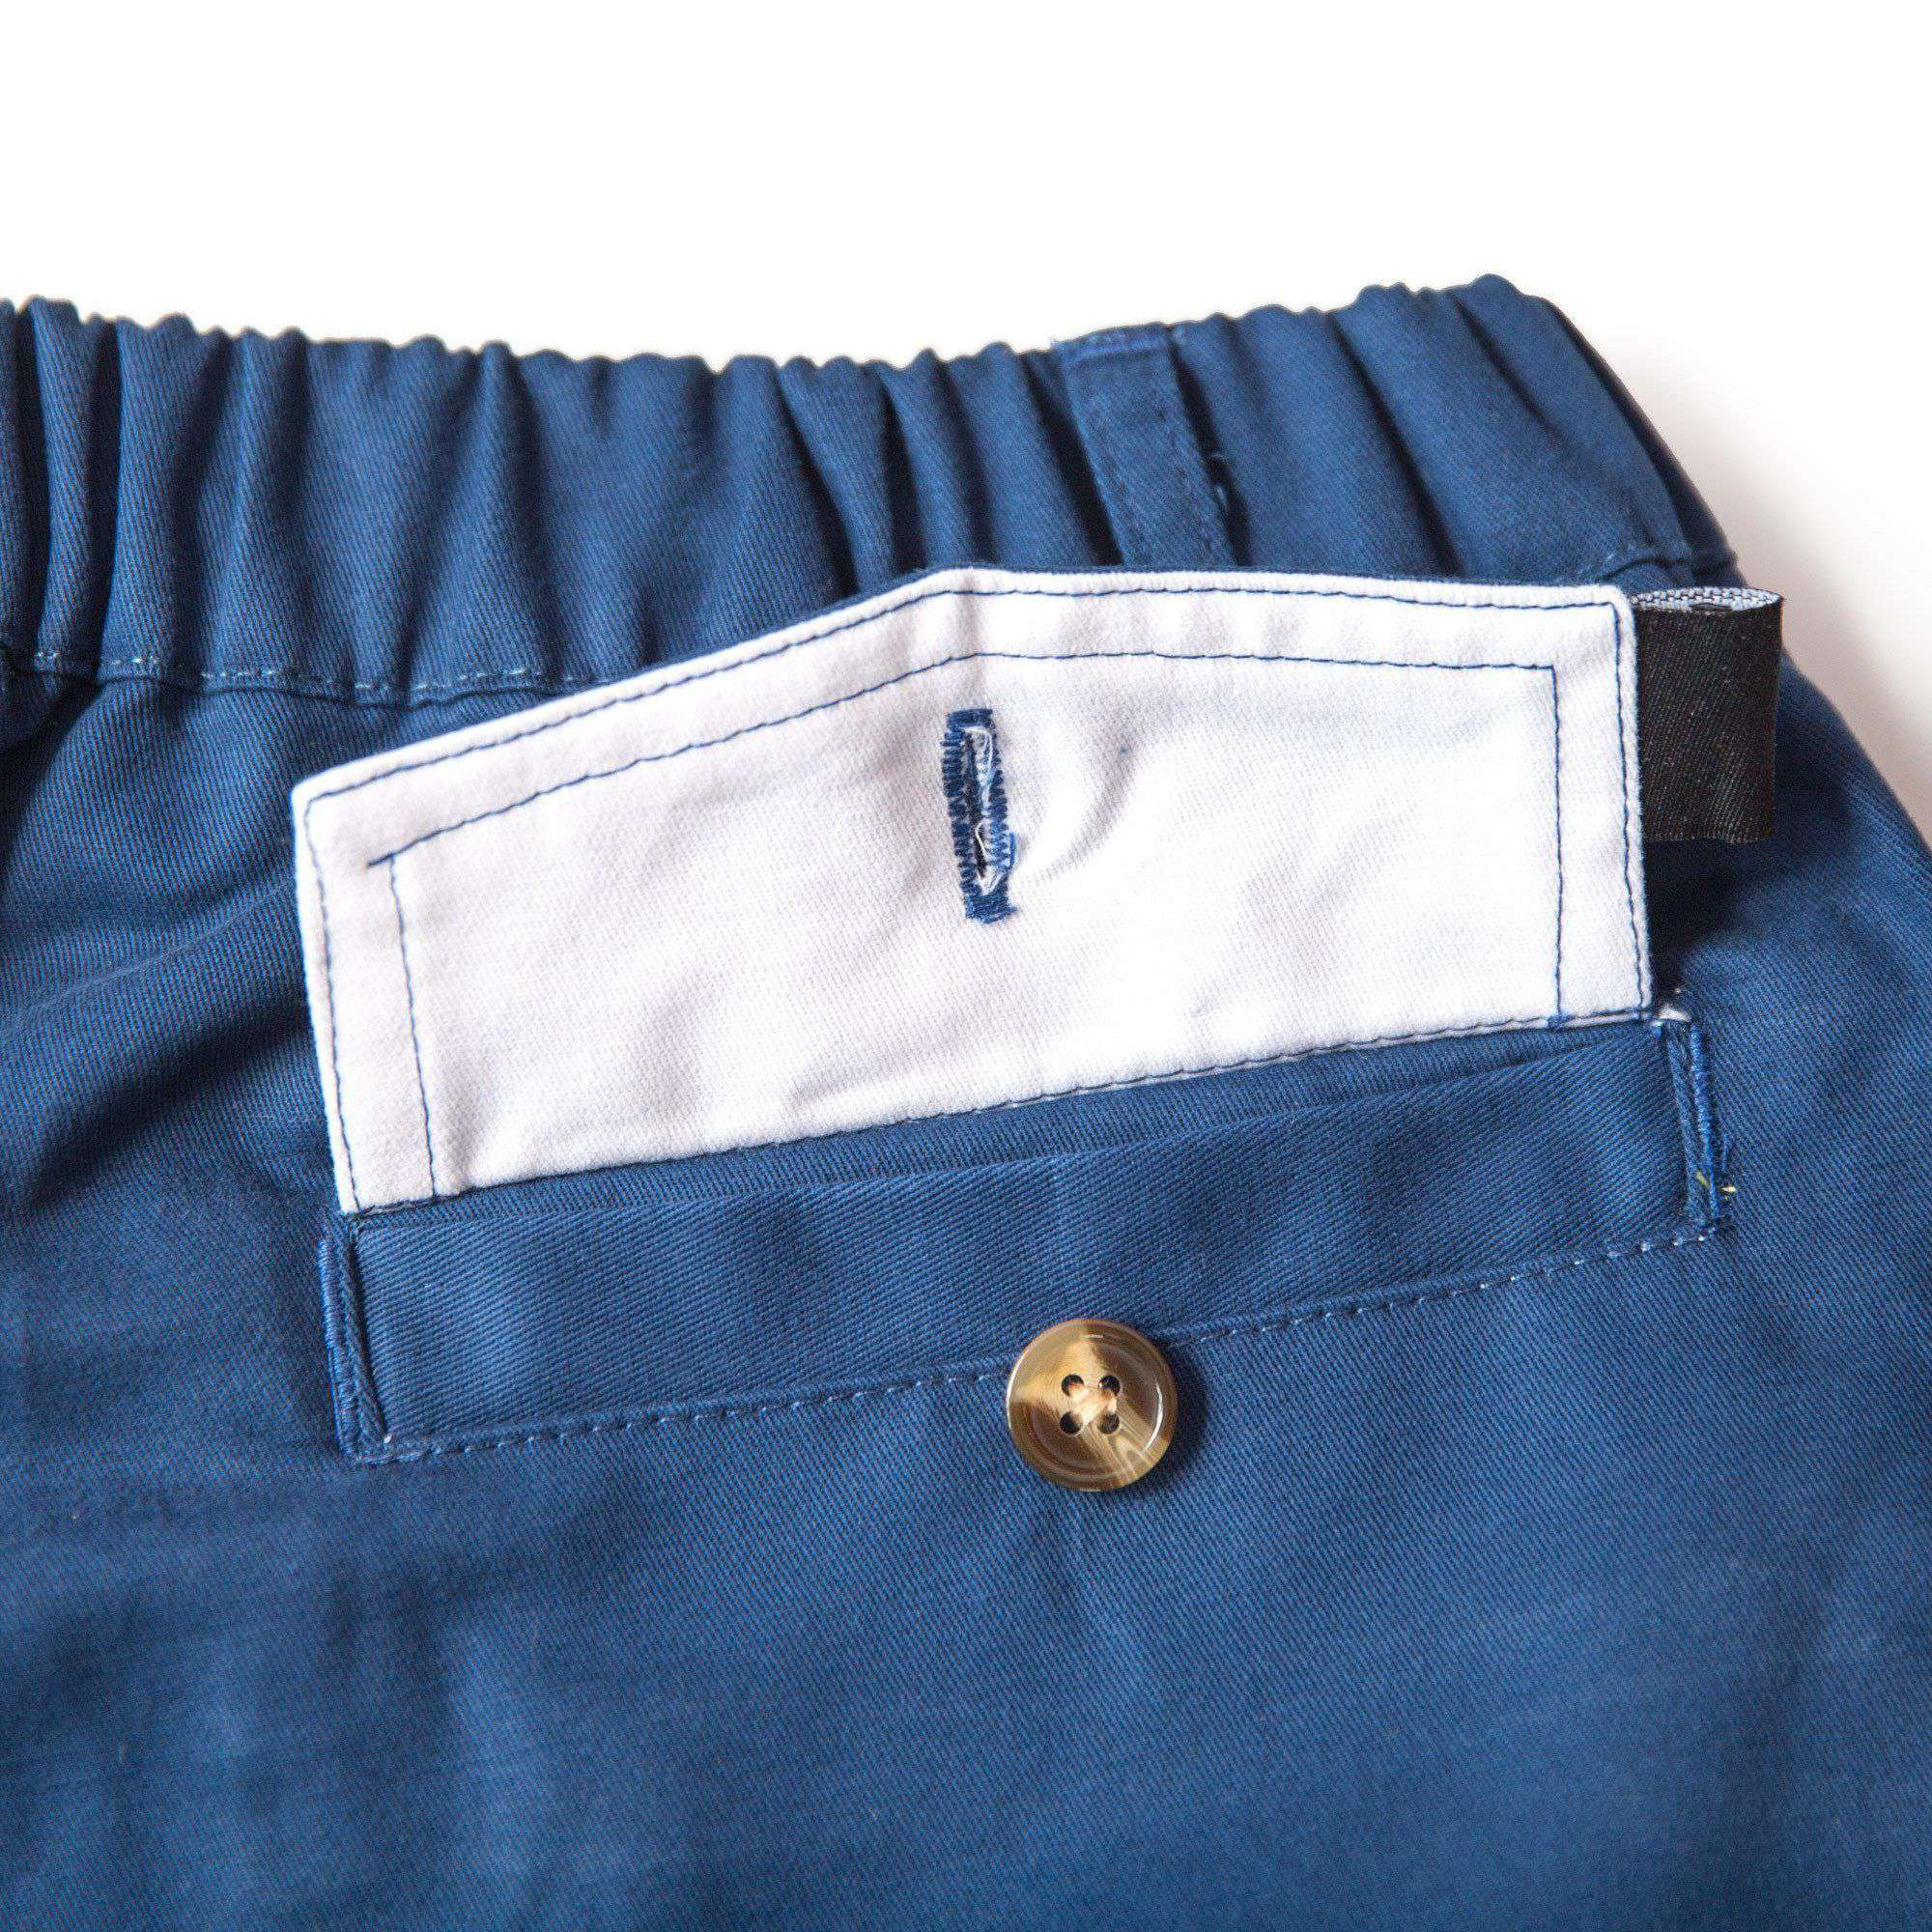 "Men's Shorts - The Deep Seas 5.5"" Shorts In Navy By Kennedy"